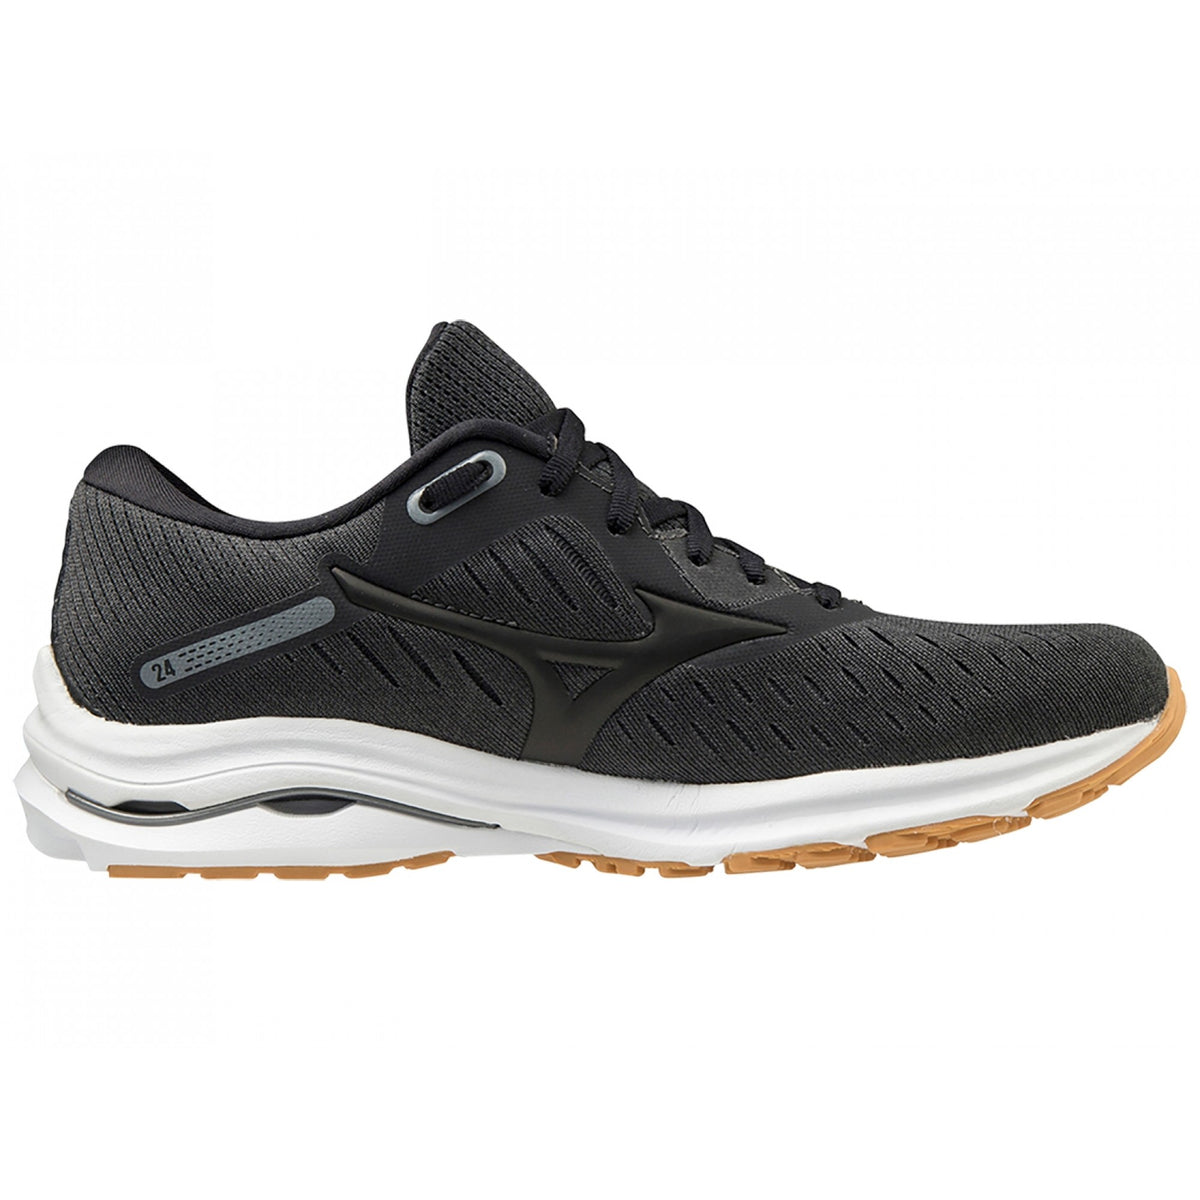 Mizuno Wave Rider 24 Womens